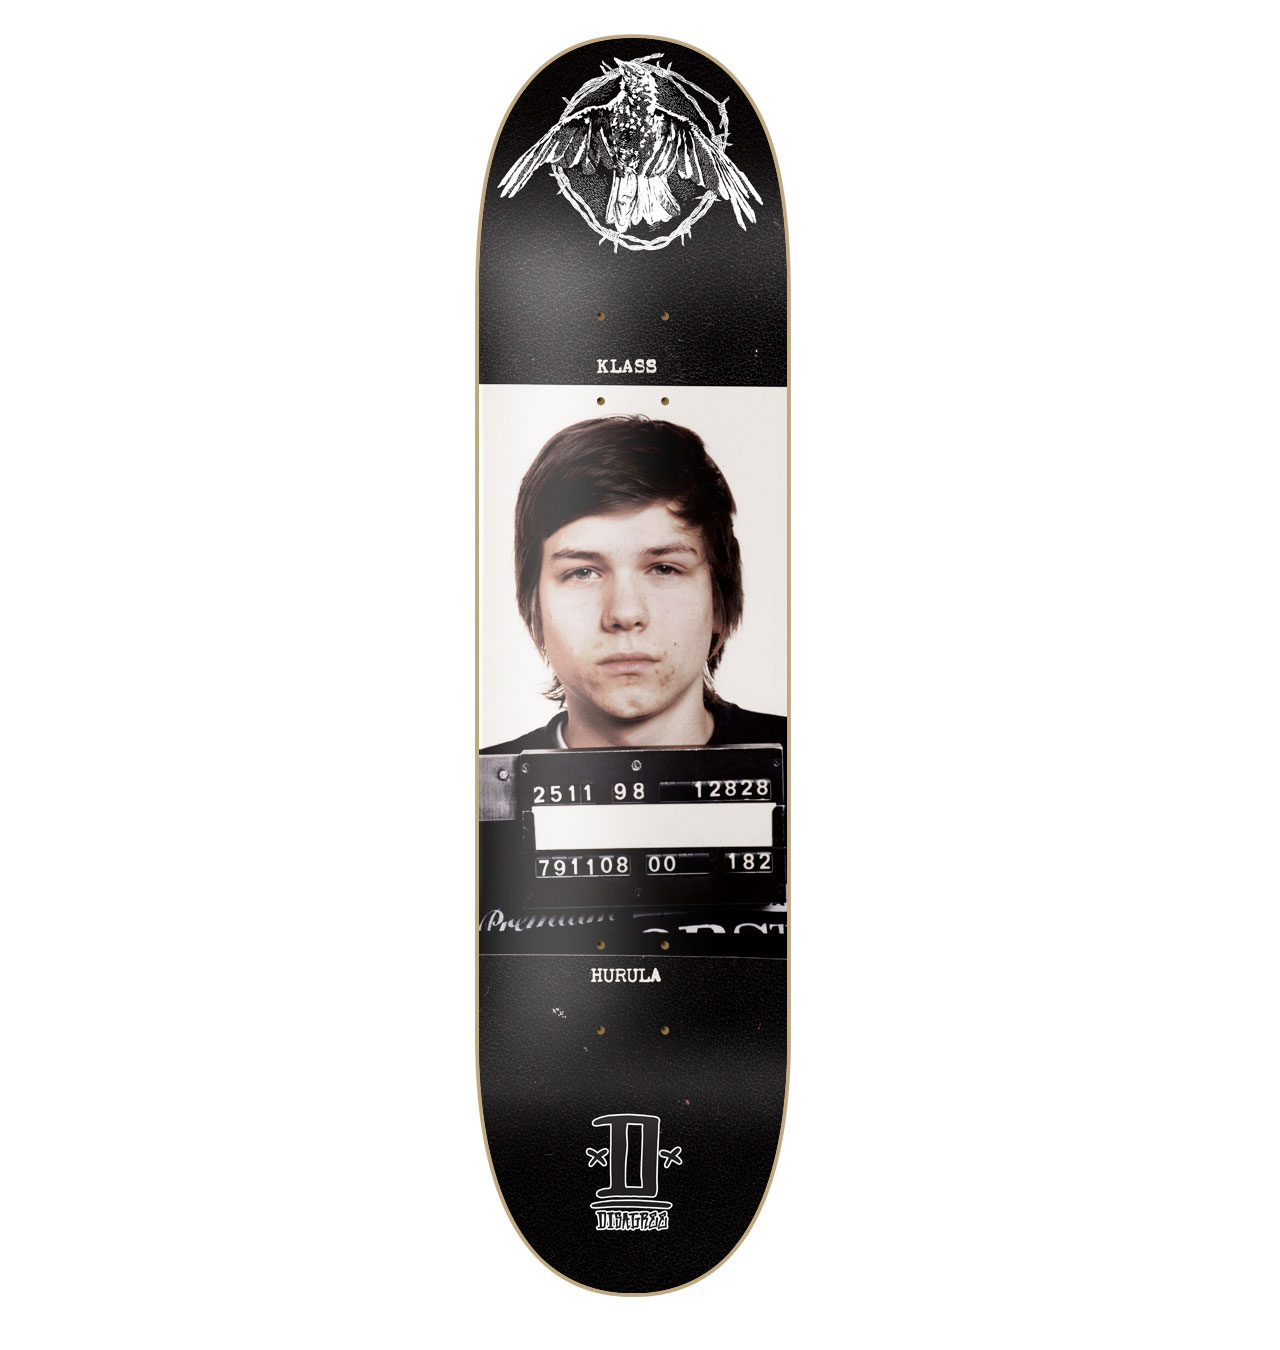 Hurula---Klass-Skateboard-Deck-8.52-1